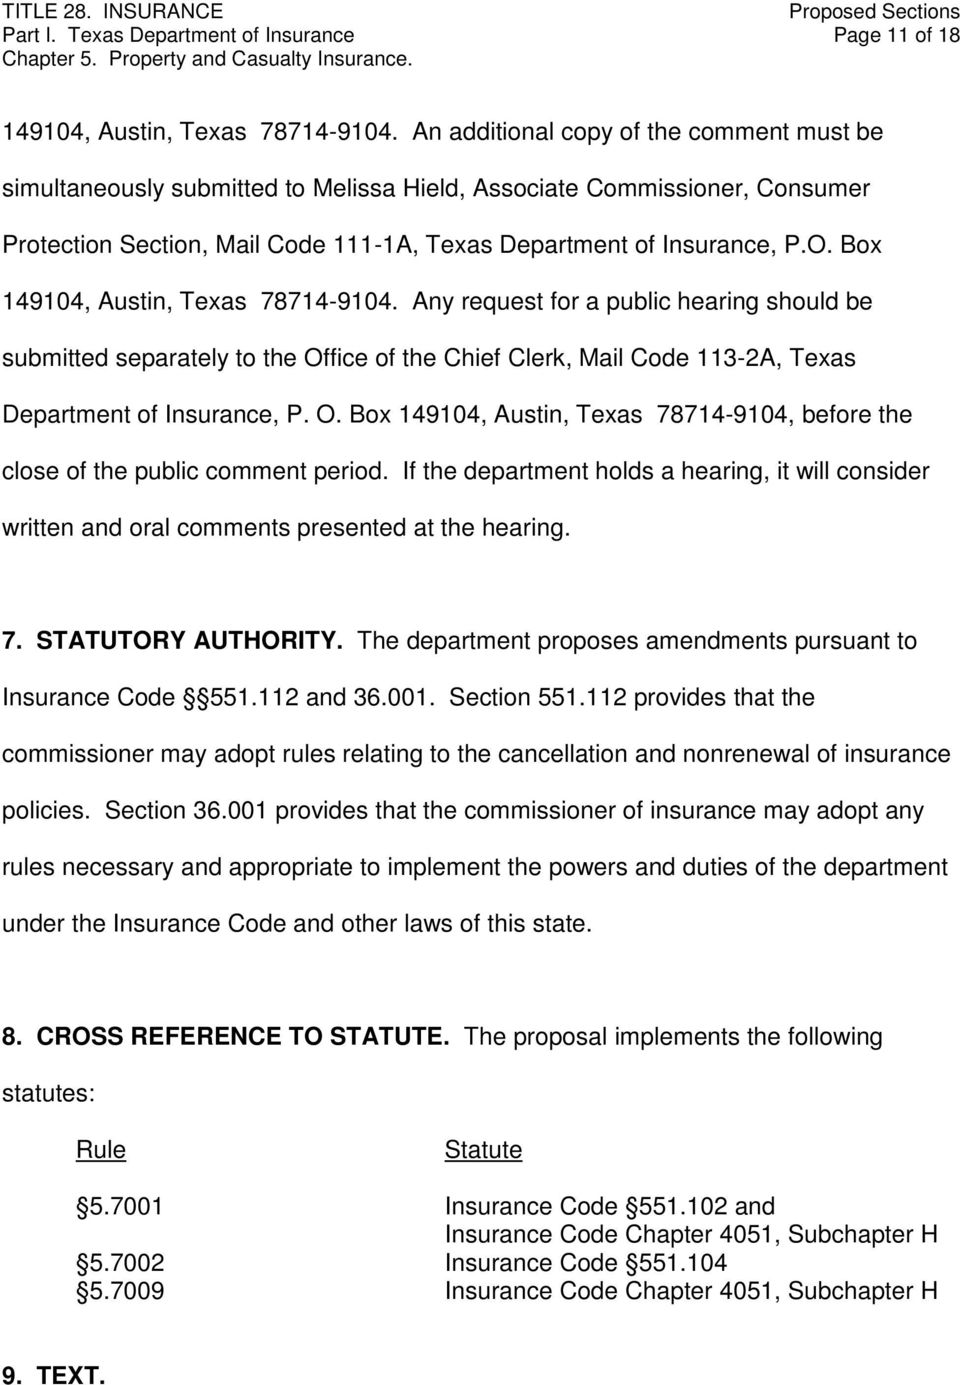 Box 149104, Austin, Texas 78714-9104. Any request for a public hearing should be submitted separately to the Office of the Chief Clerk, Mail Code 113-2A, Texas Department of Insurance, P. O. Box 149104, Austin, Texas 78714-9104, before the close of the public comment period.